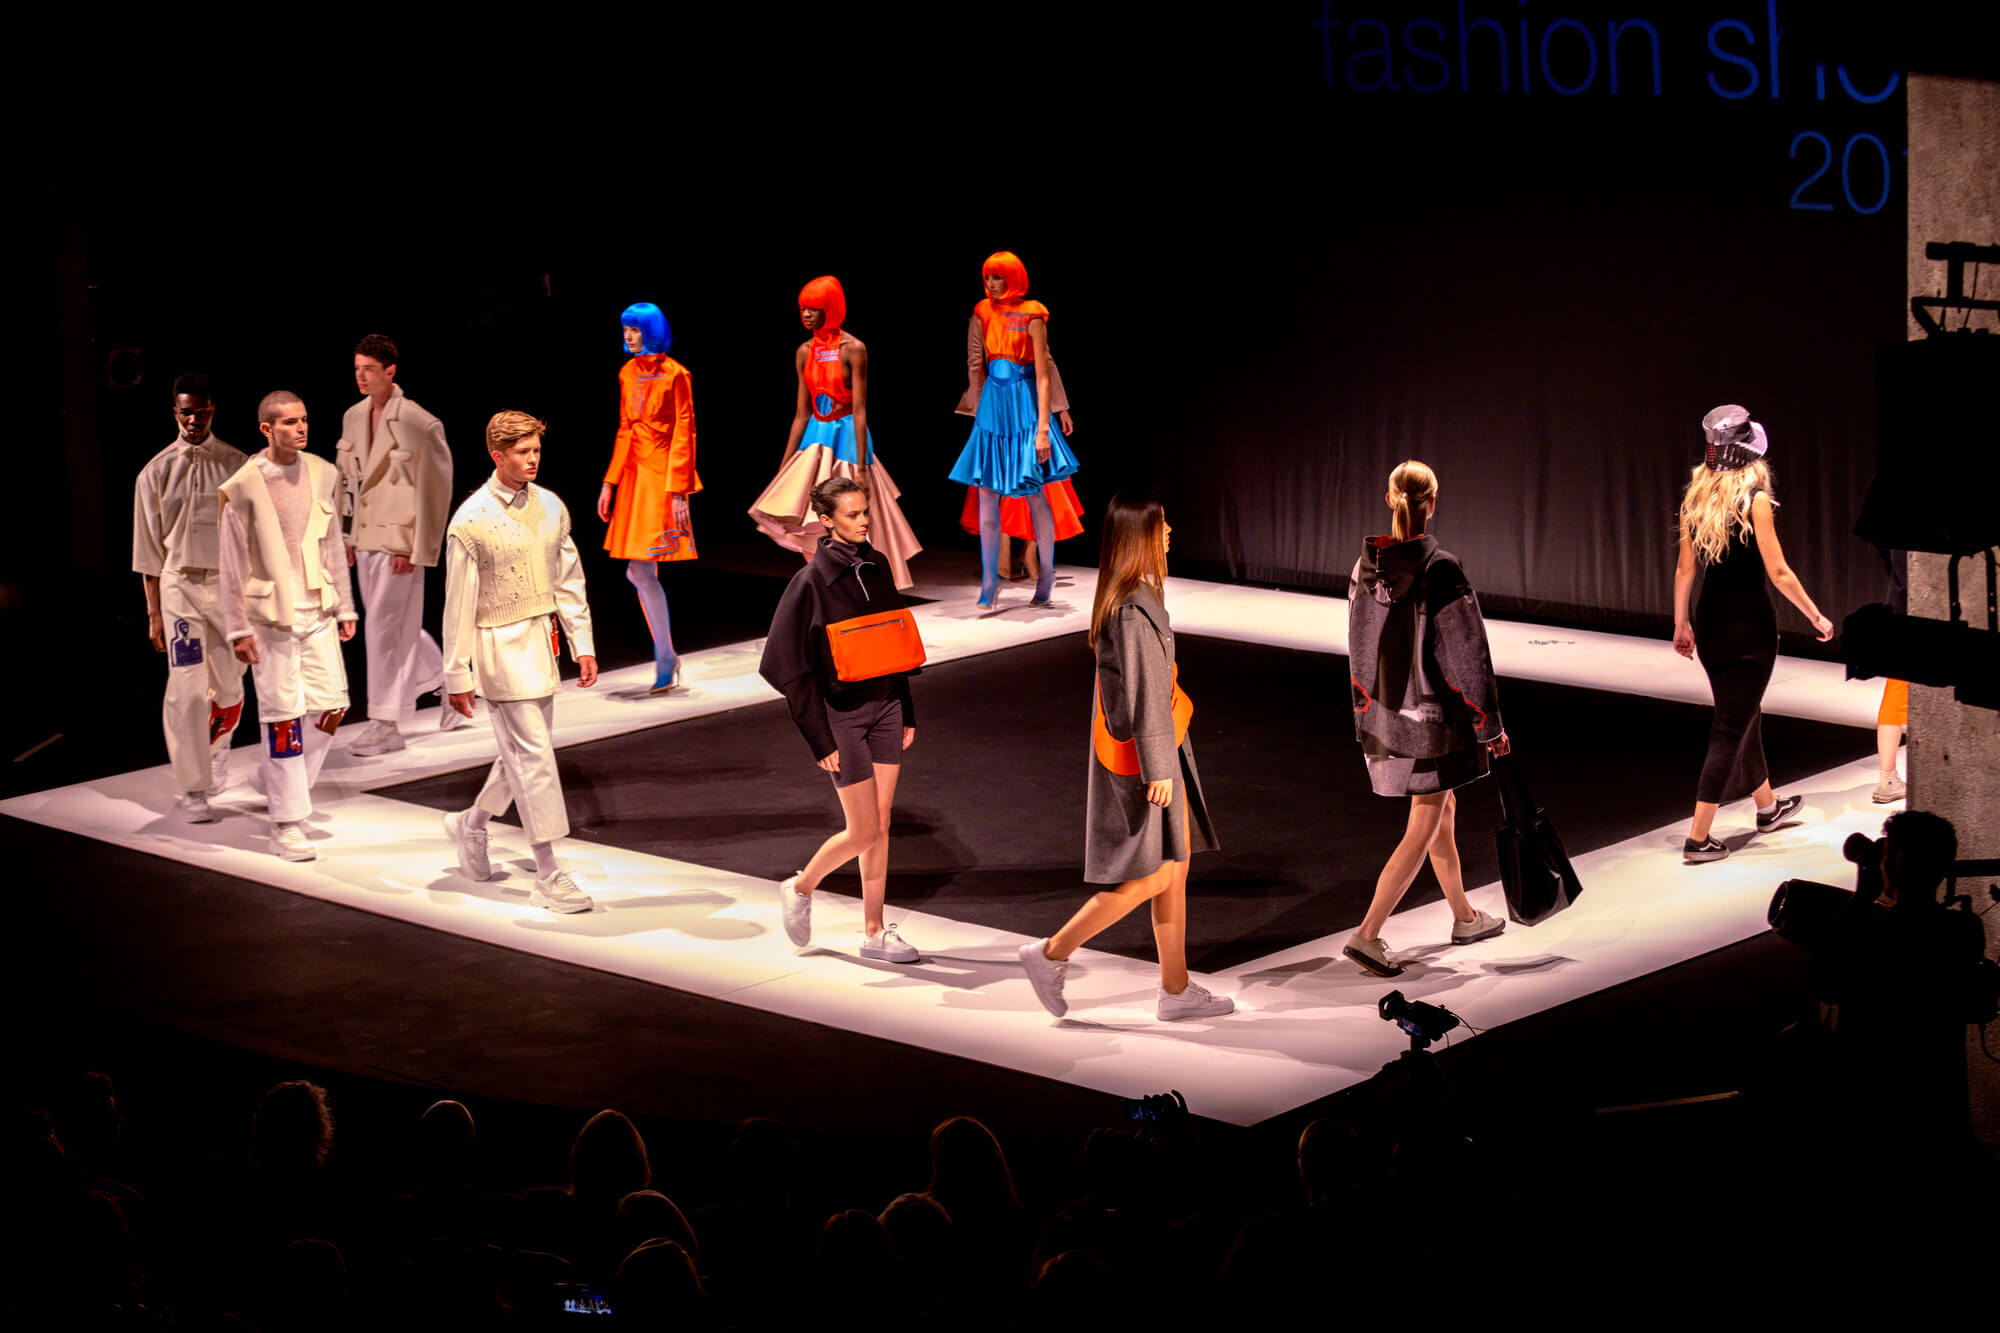 Male and female models showcase clothing designs on a catwalk